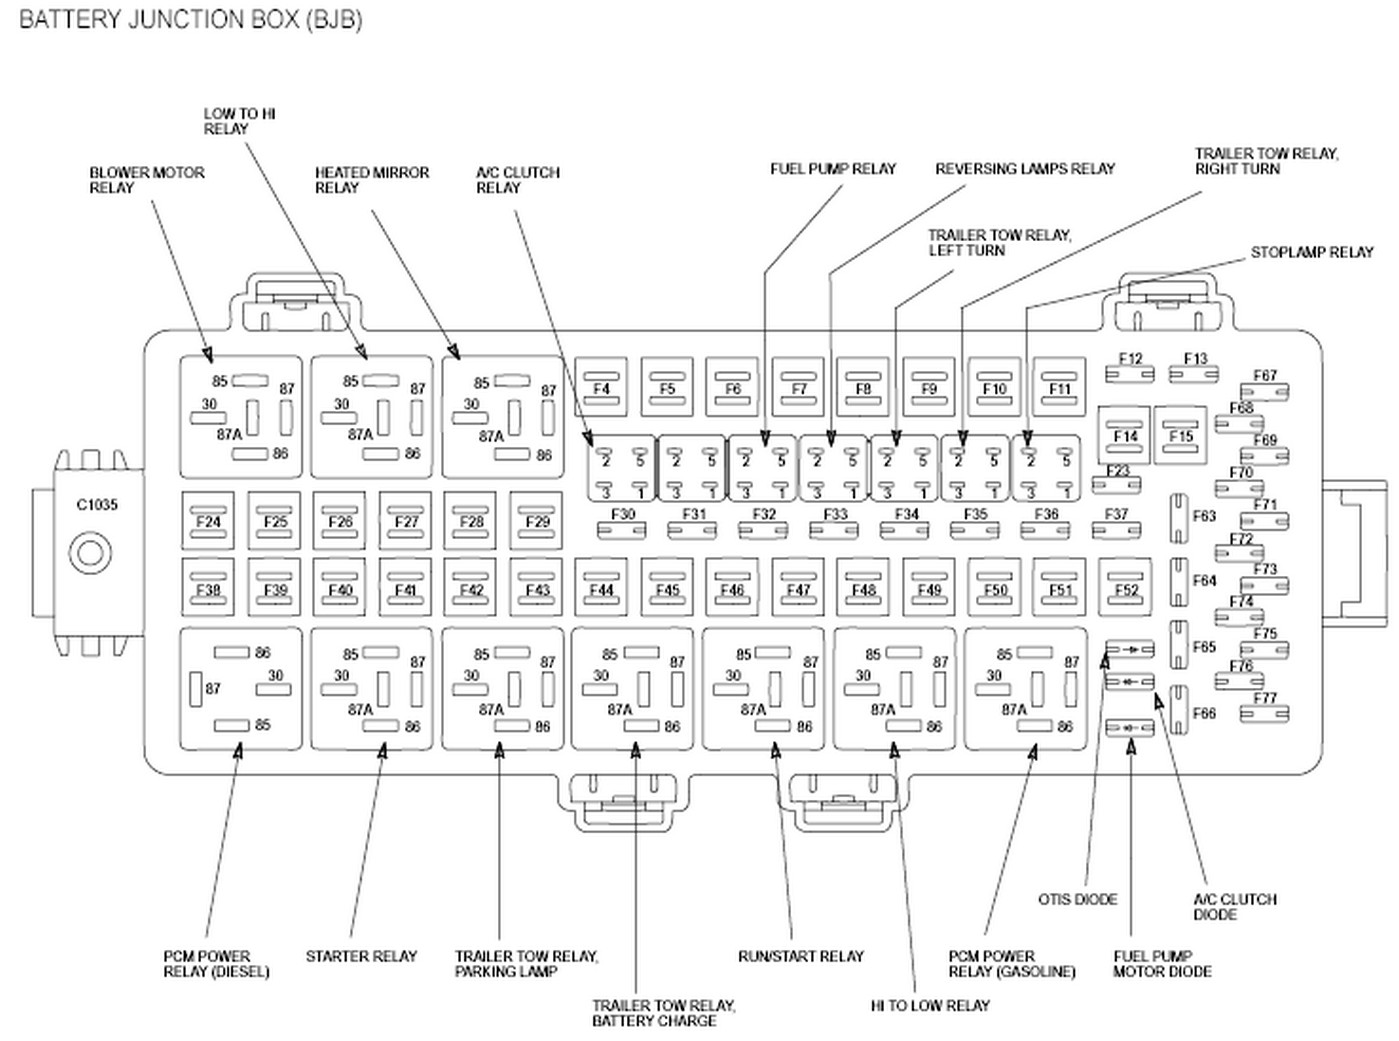 2009 e250 fuse box diagram - wiring diagram swm dish for wiring diagram  schematics  wiring diagram schematics